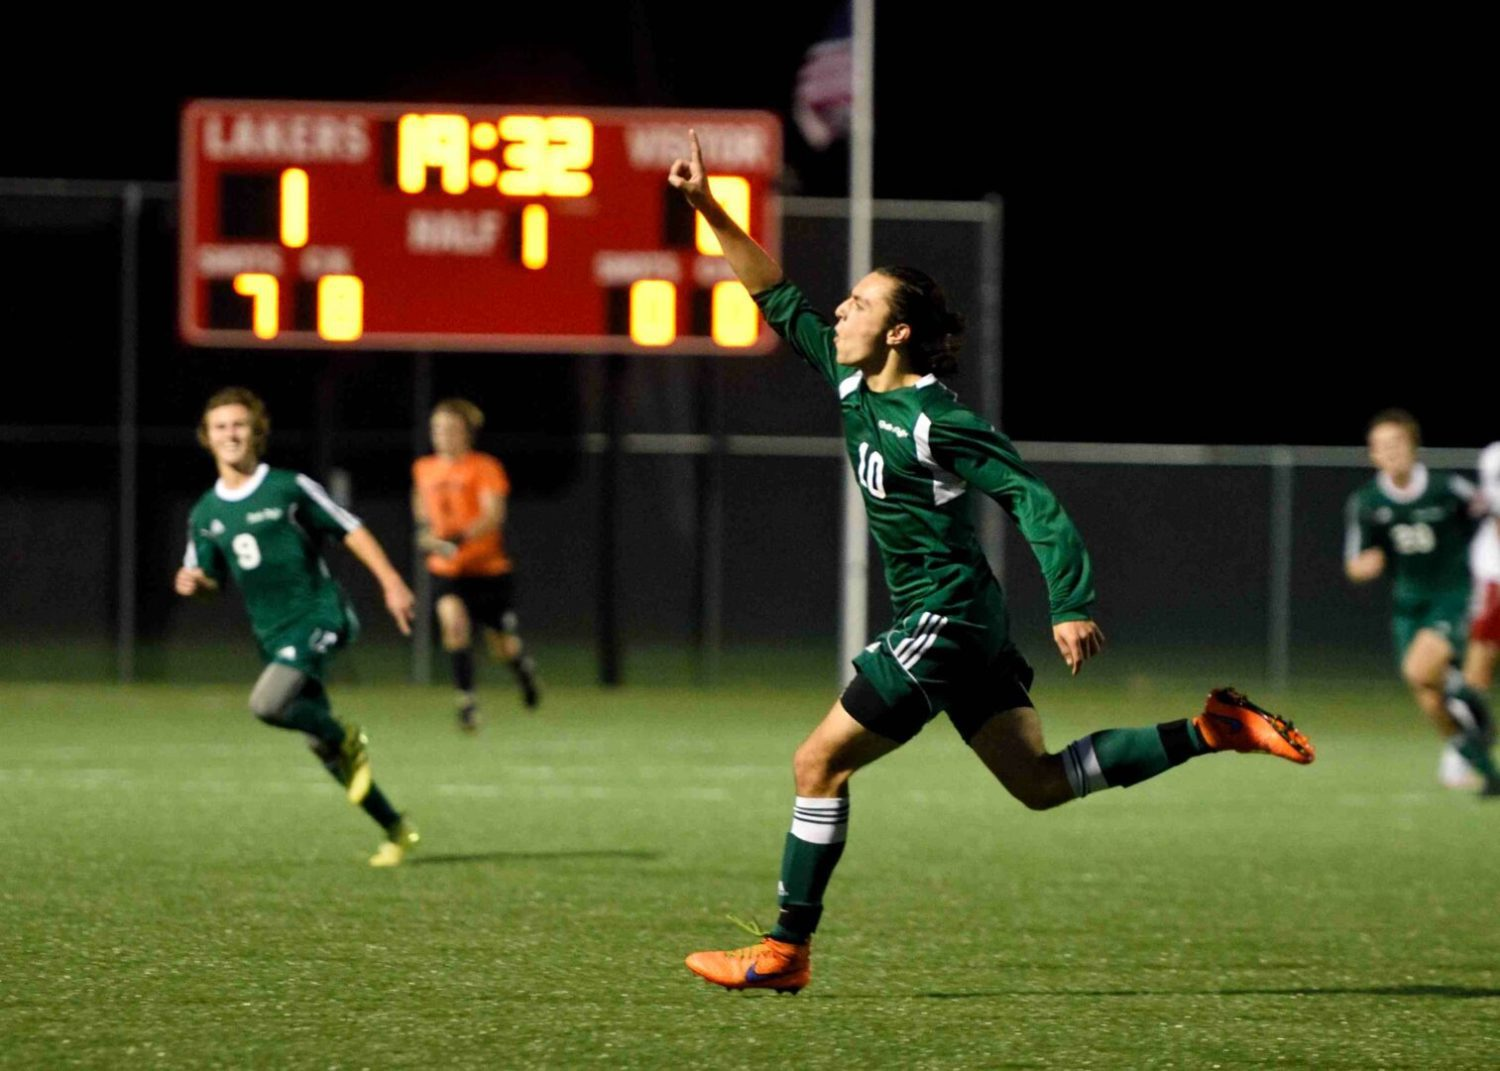 Reeths-Puffer soccer team stuns second-ranked Spring Lake 2-1 in district action